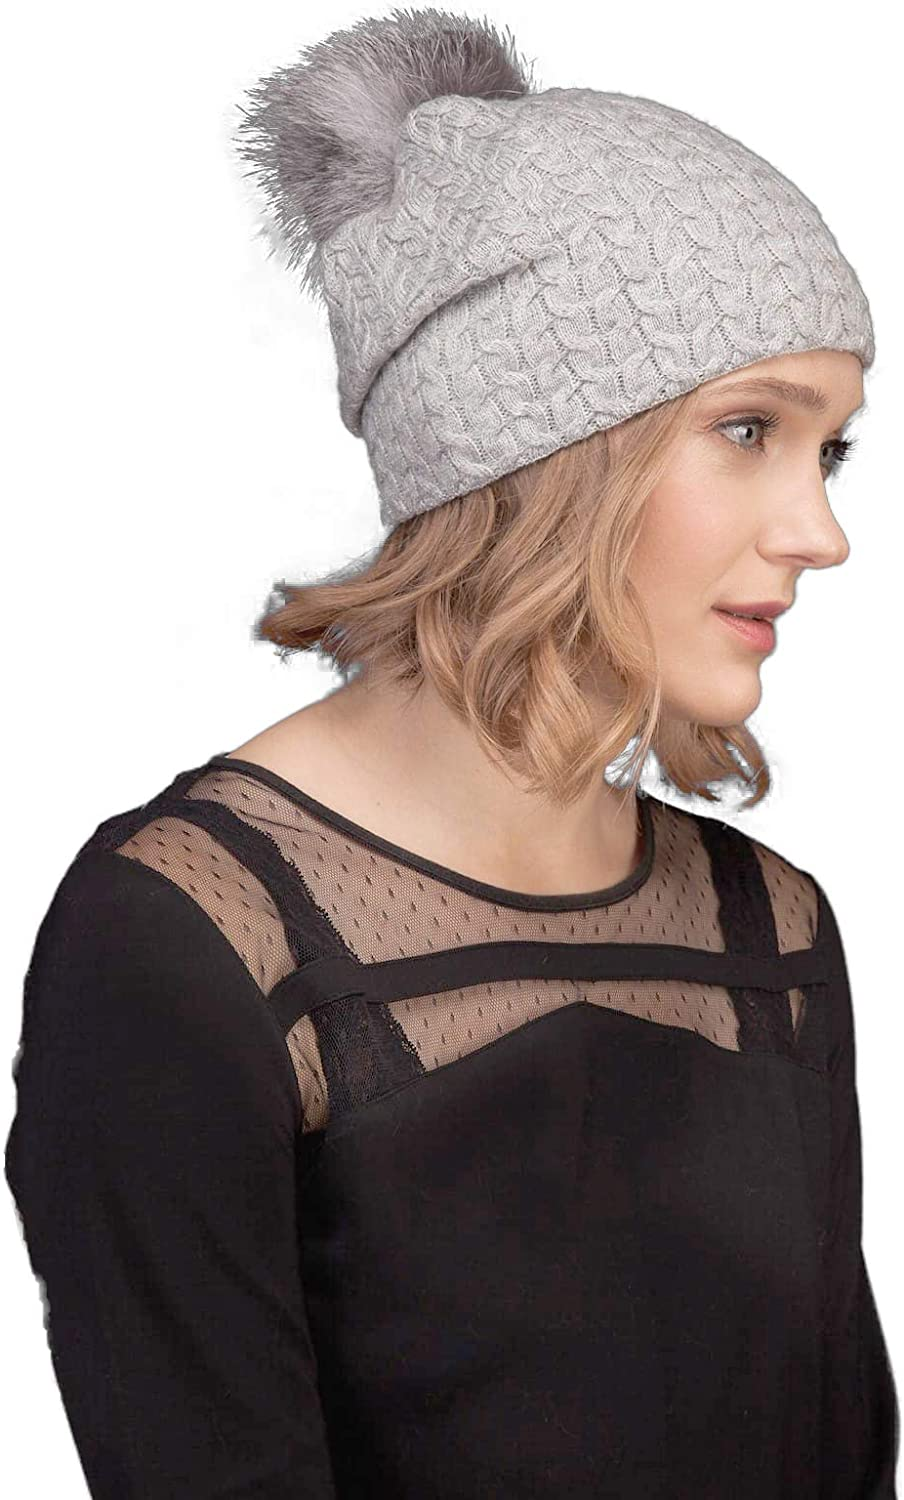 AVIMA Austin Mall Knit Pure Cashmere Beanie Hat for Slouchy Warm - Women Thi Gorgeous